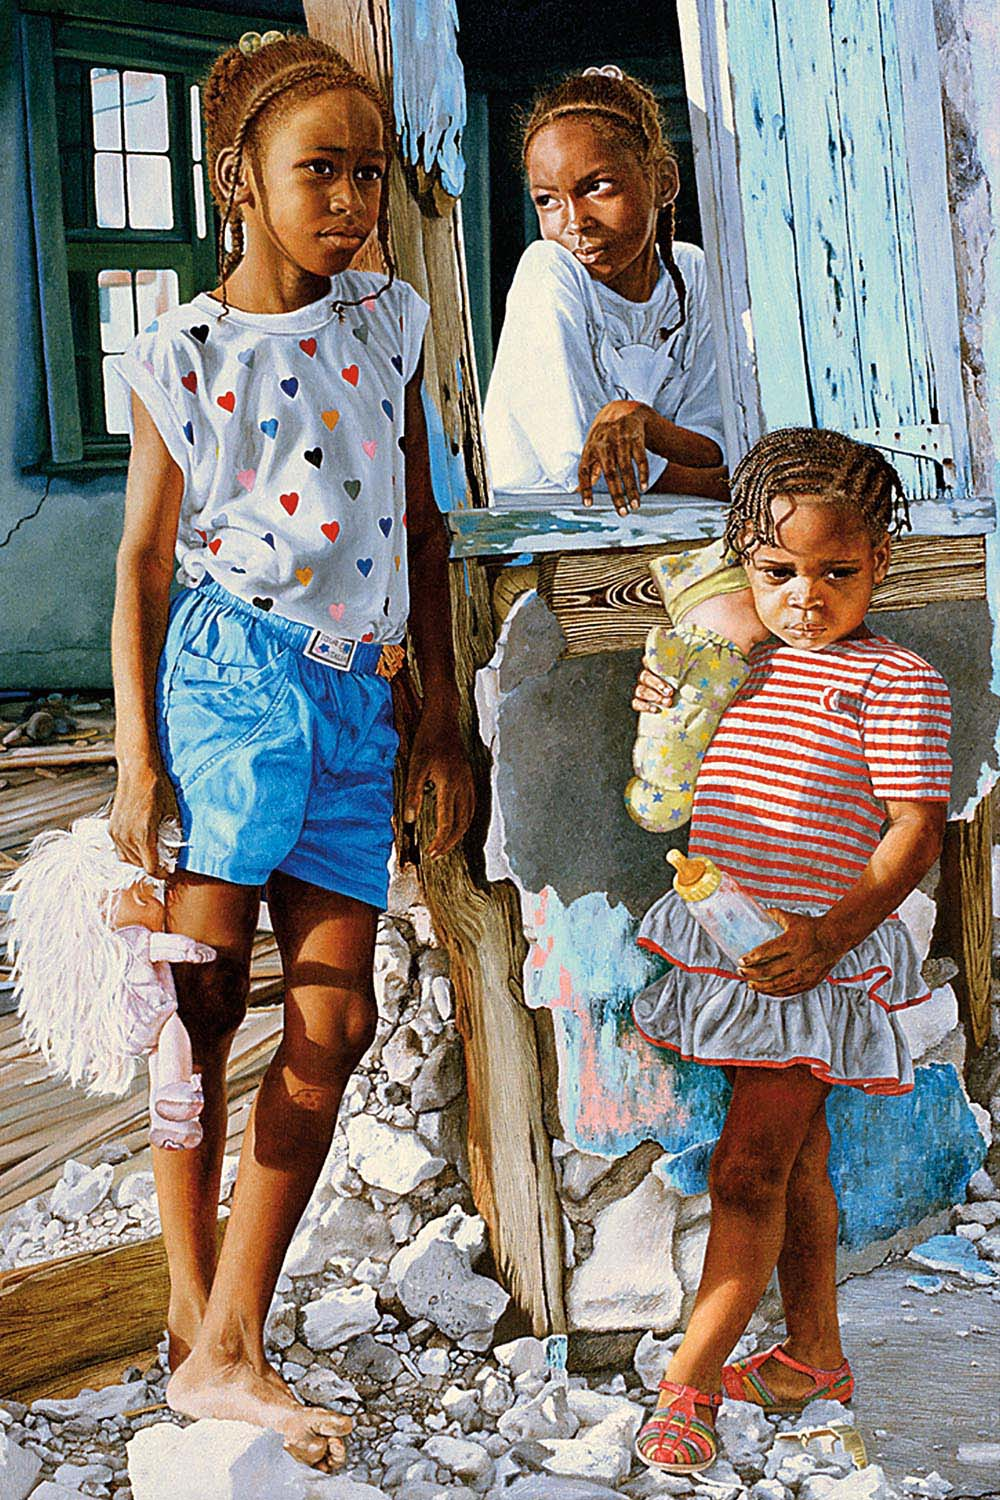 """Nicole Minnis's oil painting After the Storm depicts three children whose home has been destroyed. She writes: """"In August 1992, Hurricane Andrew hit the island of Eleuthera, where we lived. Anyone who has ever been through a major hurricane like Andrew or Dorian knows that this experience changes your life forever. Each [child's] expression is different, but captures their personal struggle and unique response to the same event. It took me almost a year to paint this canvas"""". Courtesy the National Art Gallery of The Bahamas"""